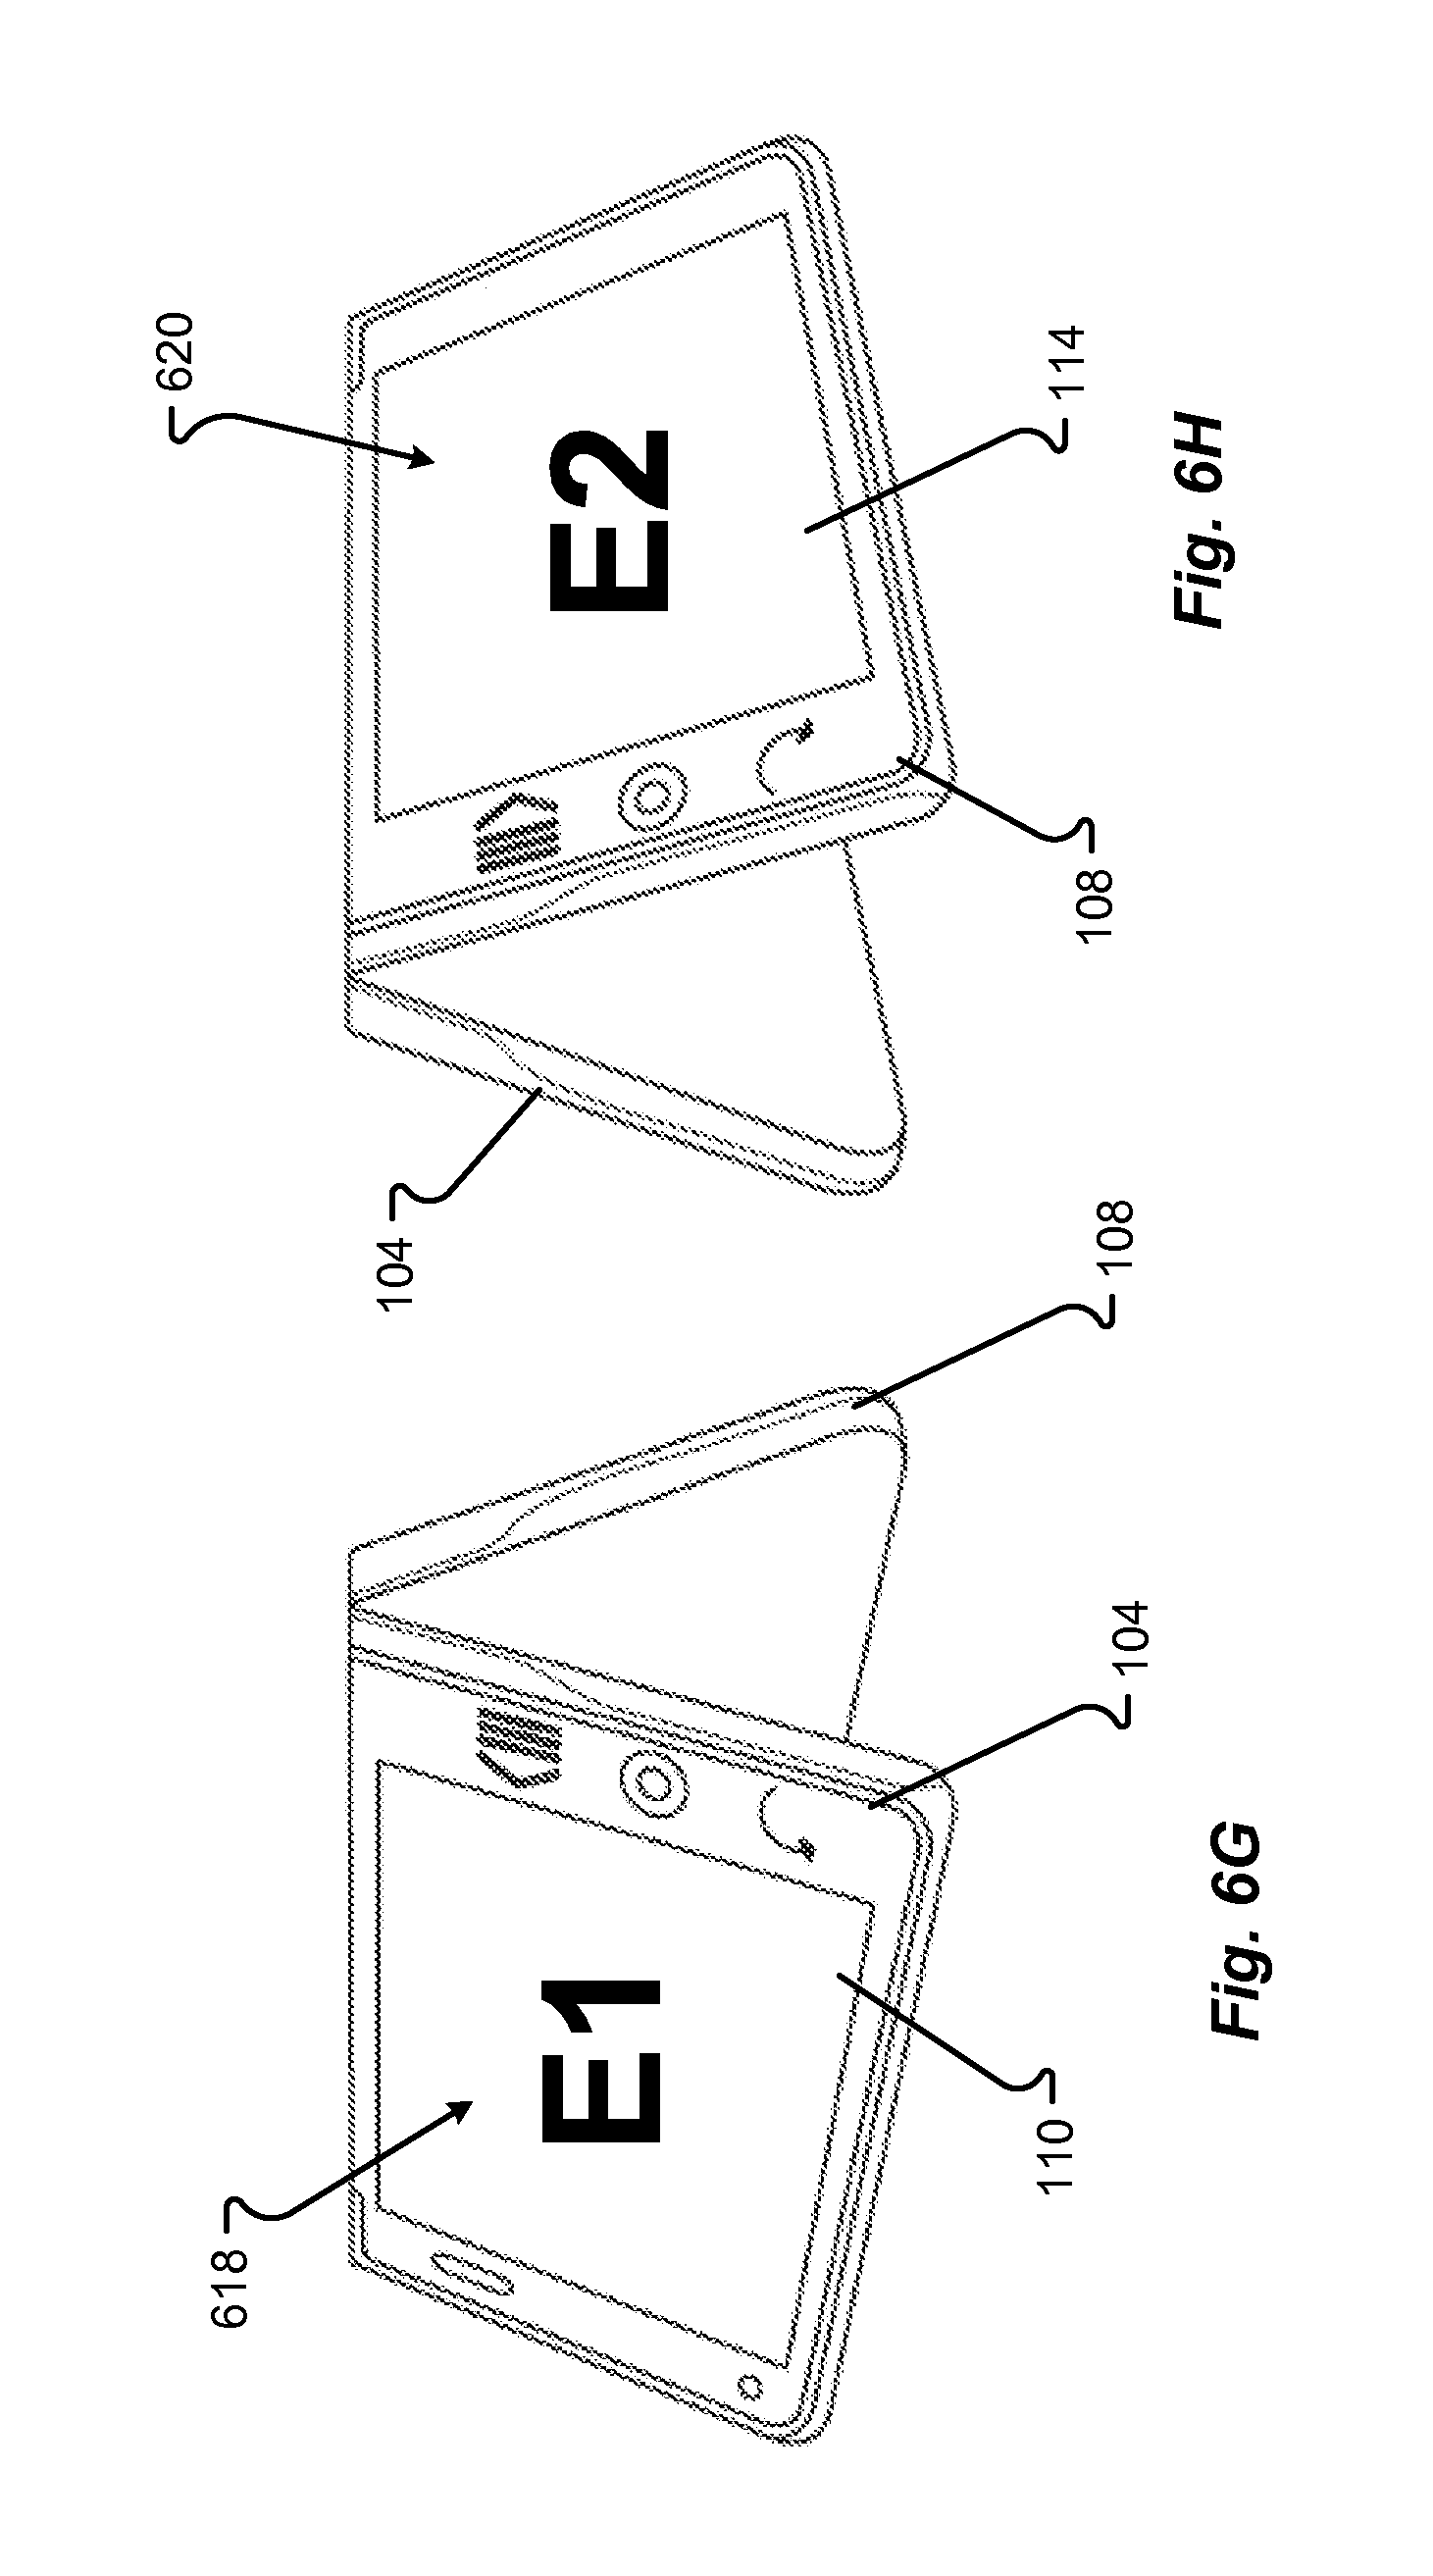 Patent Us20120081304 Hardware Buttons Activated Based On Focus Keysecure 3b Wiring Diagram Drawing